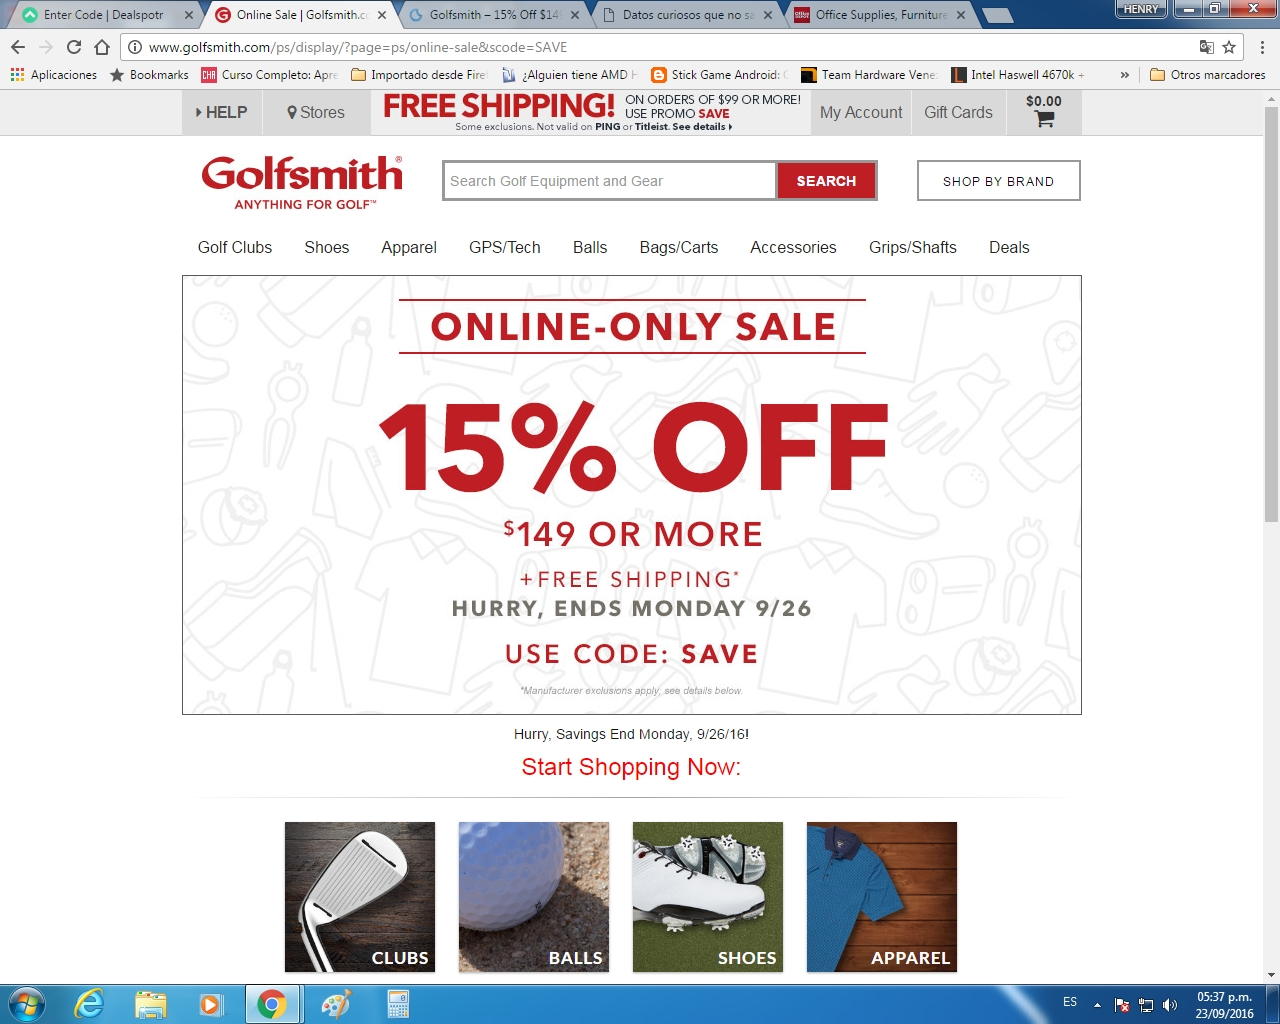 graphic regarding Golfsmith Printable Coupons identified as Golfsmith leist discount codes / Homeshop18 low cost discount codes may possibly